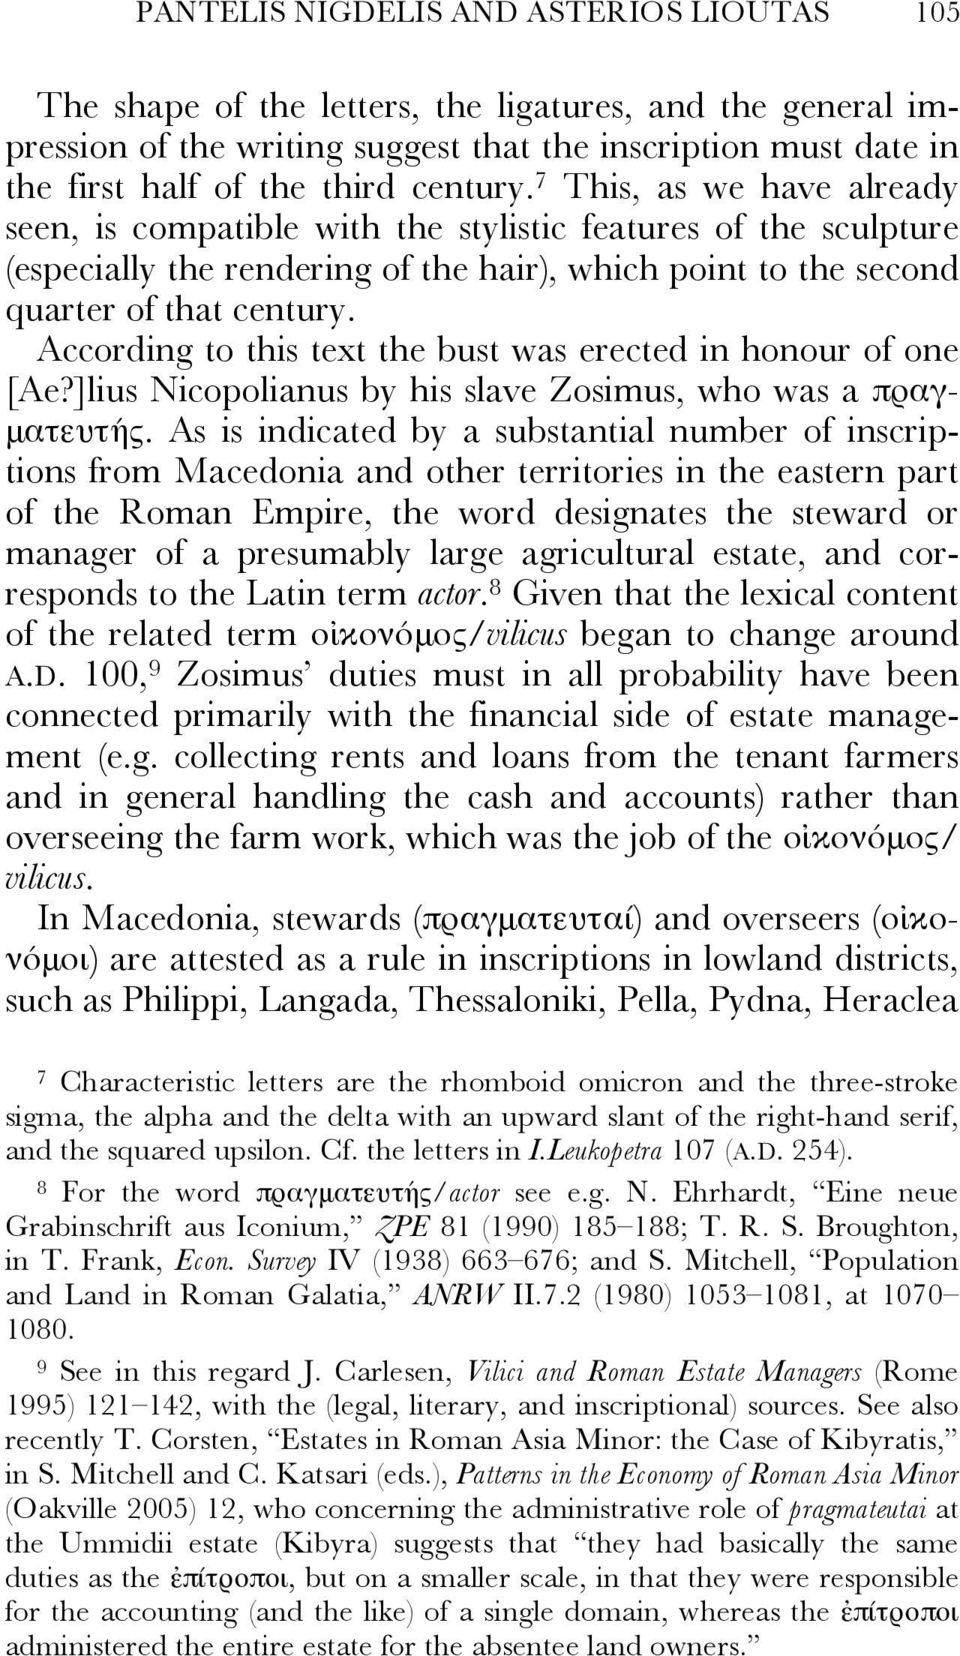 According to this text the bust was erected in honour of one [Ae?]lius Nicopolianus by his slave Zosimus, who was a πραγματευτής.